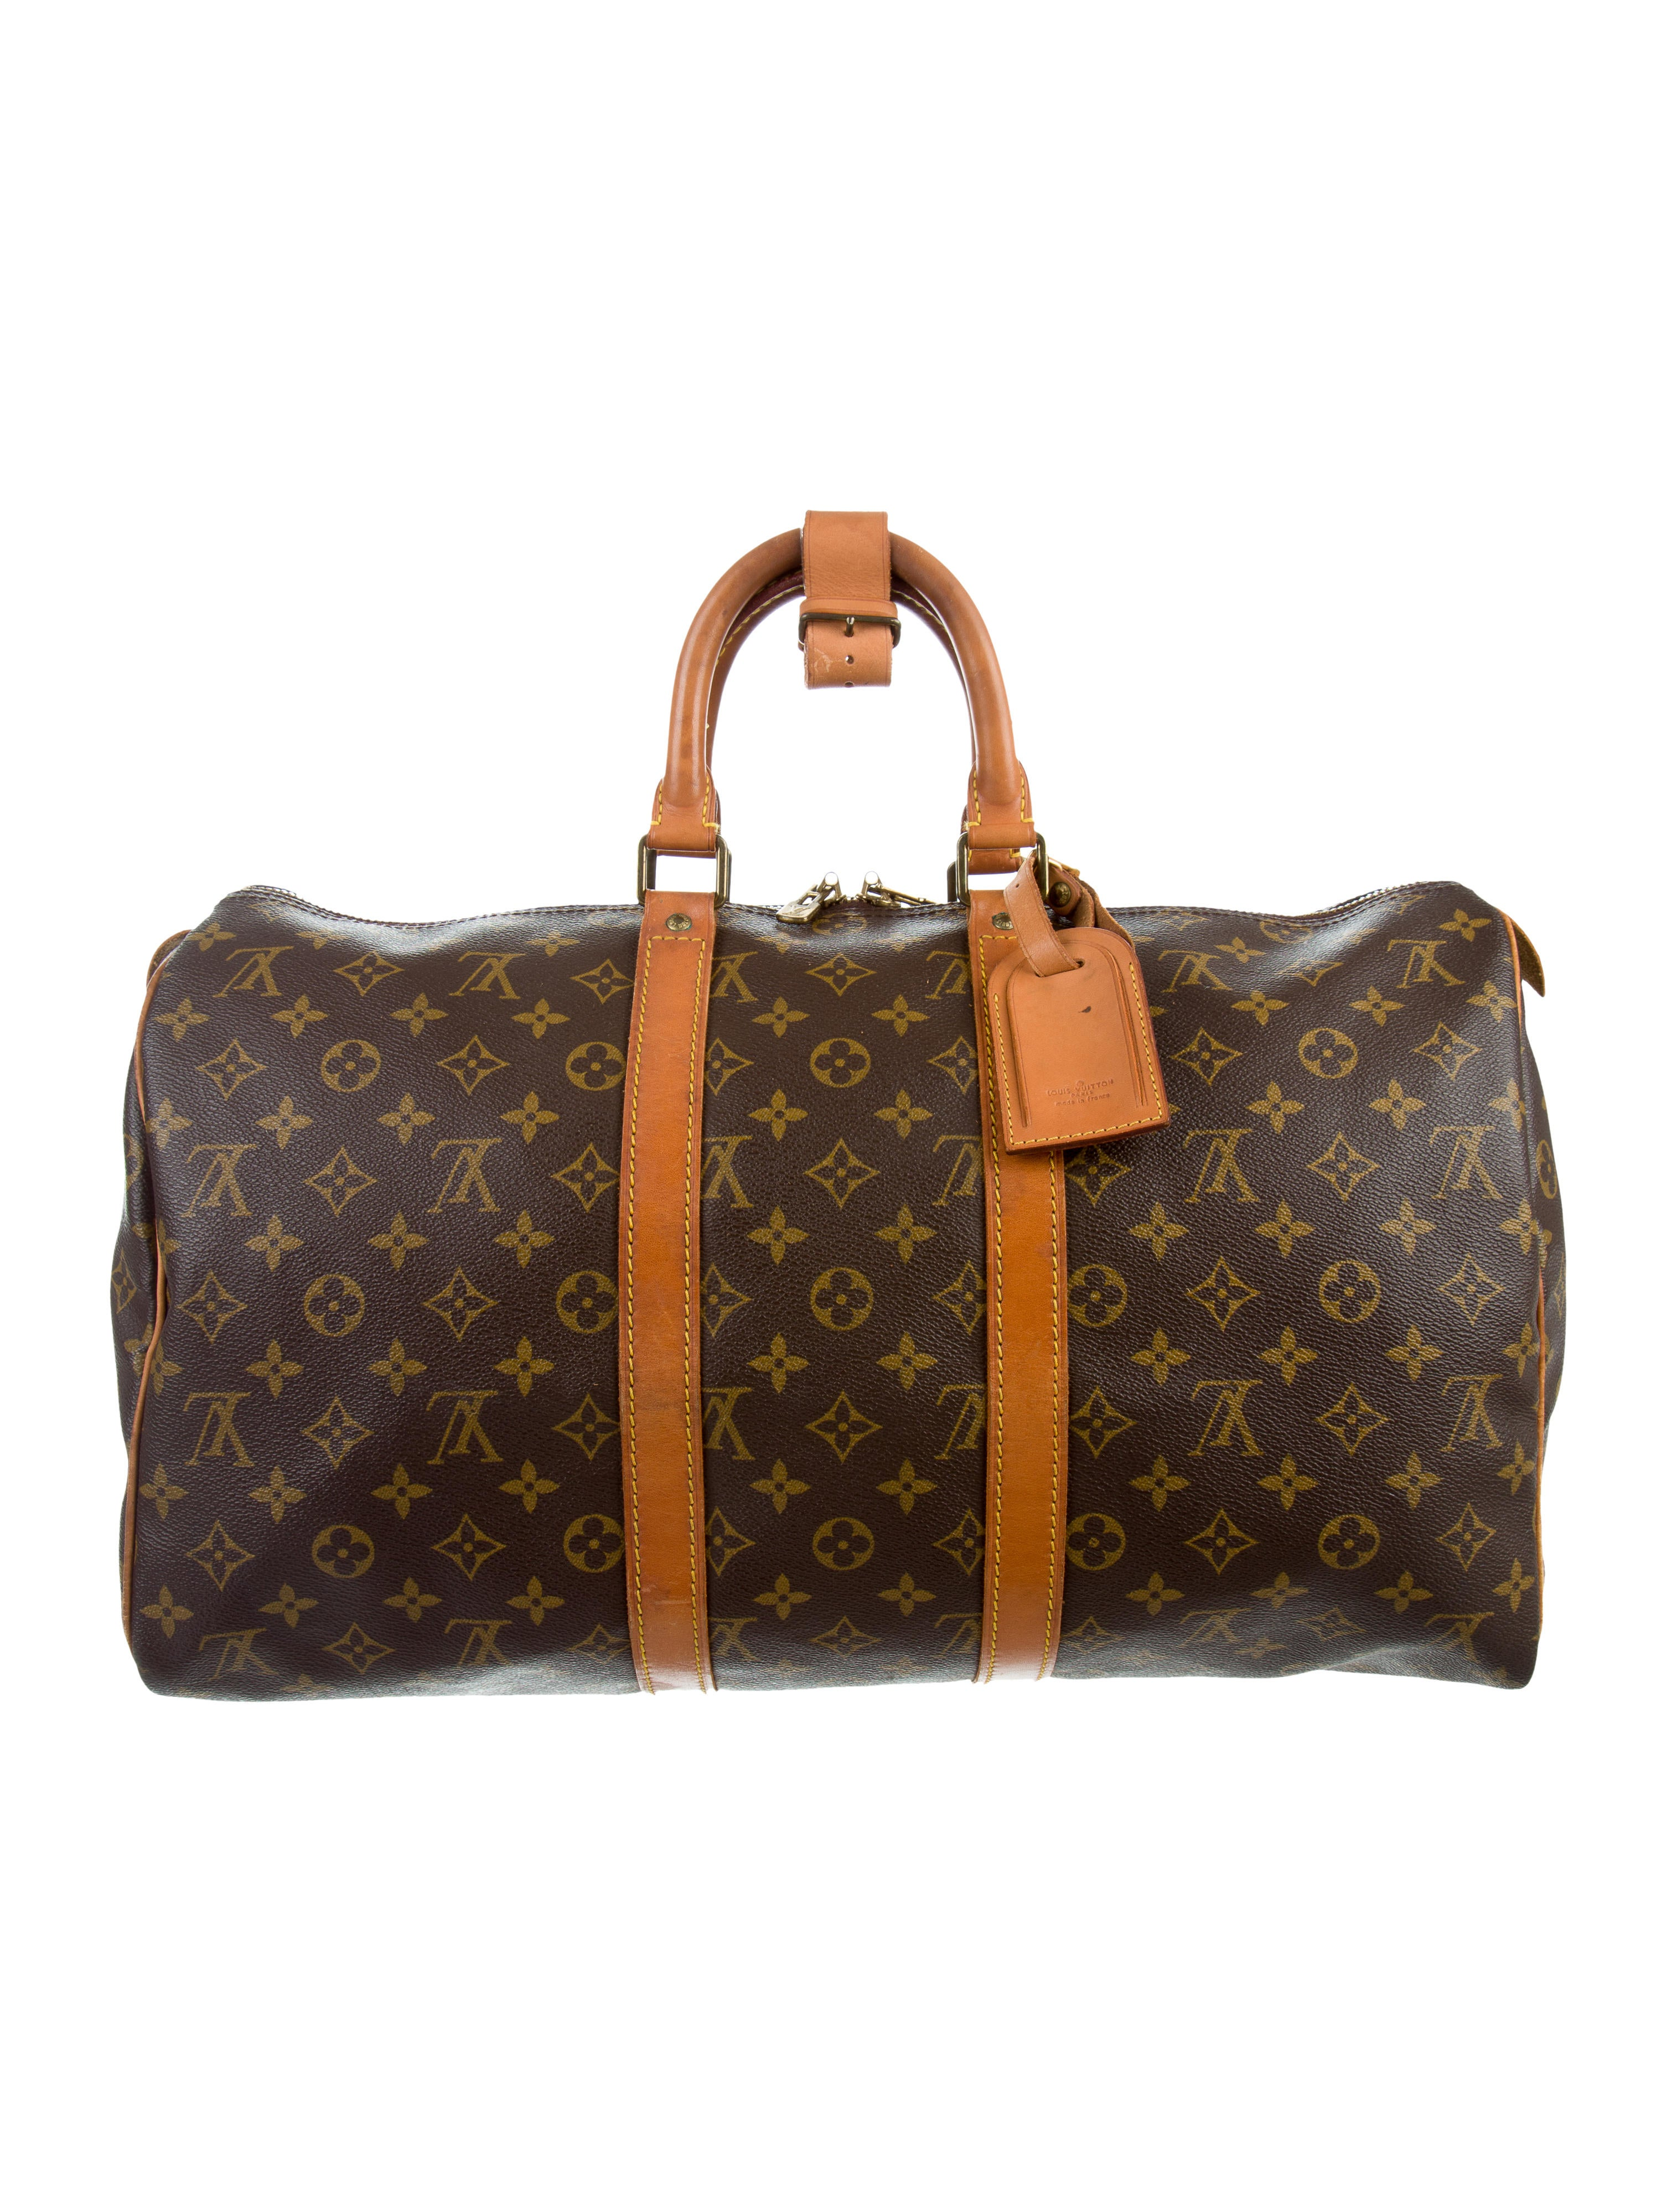 louis vuitton monogram keepall 45 bags lou106207 the realreal. Black Bedroom Furniture Sets. Home Design Ideas